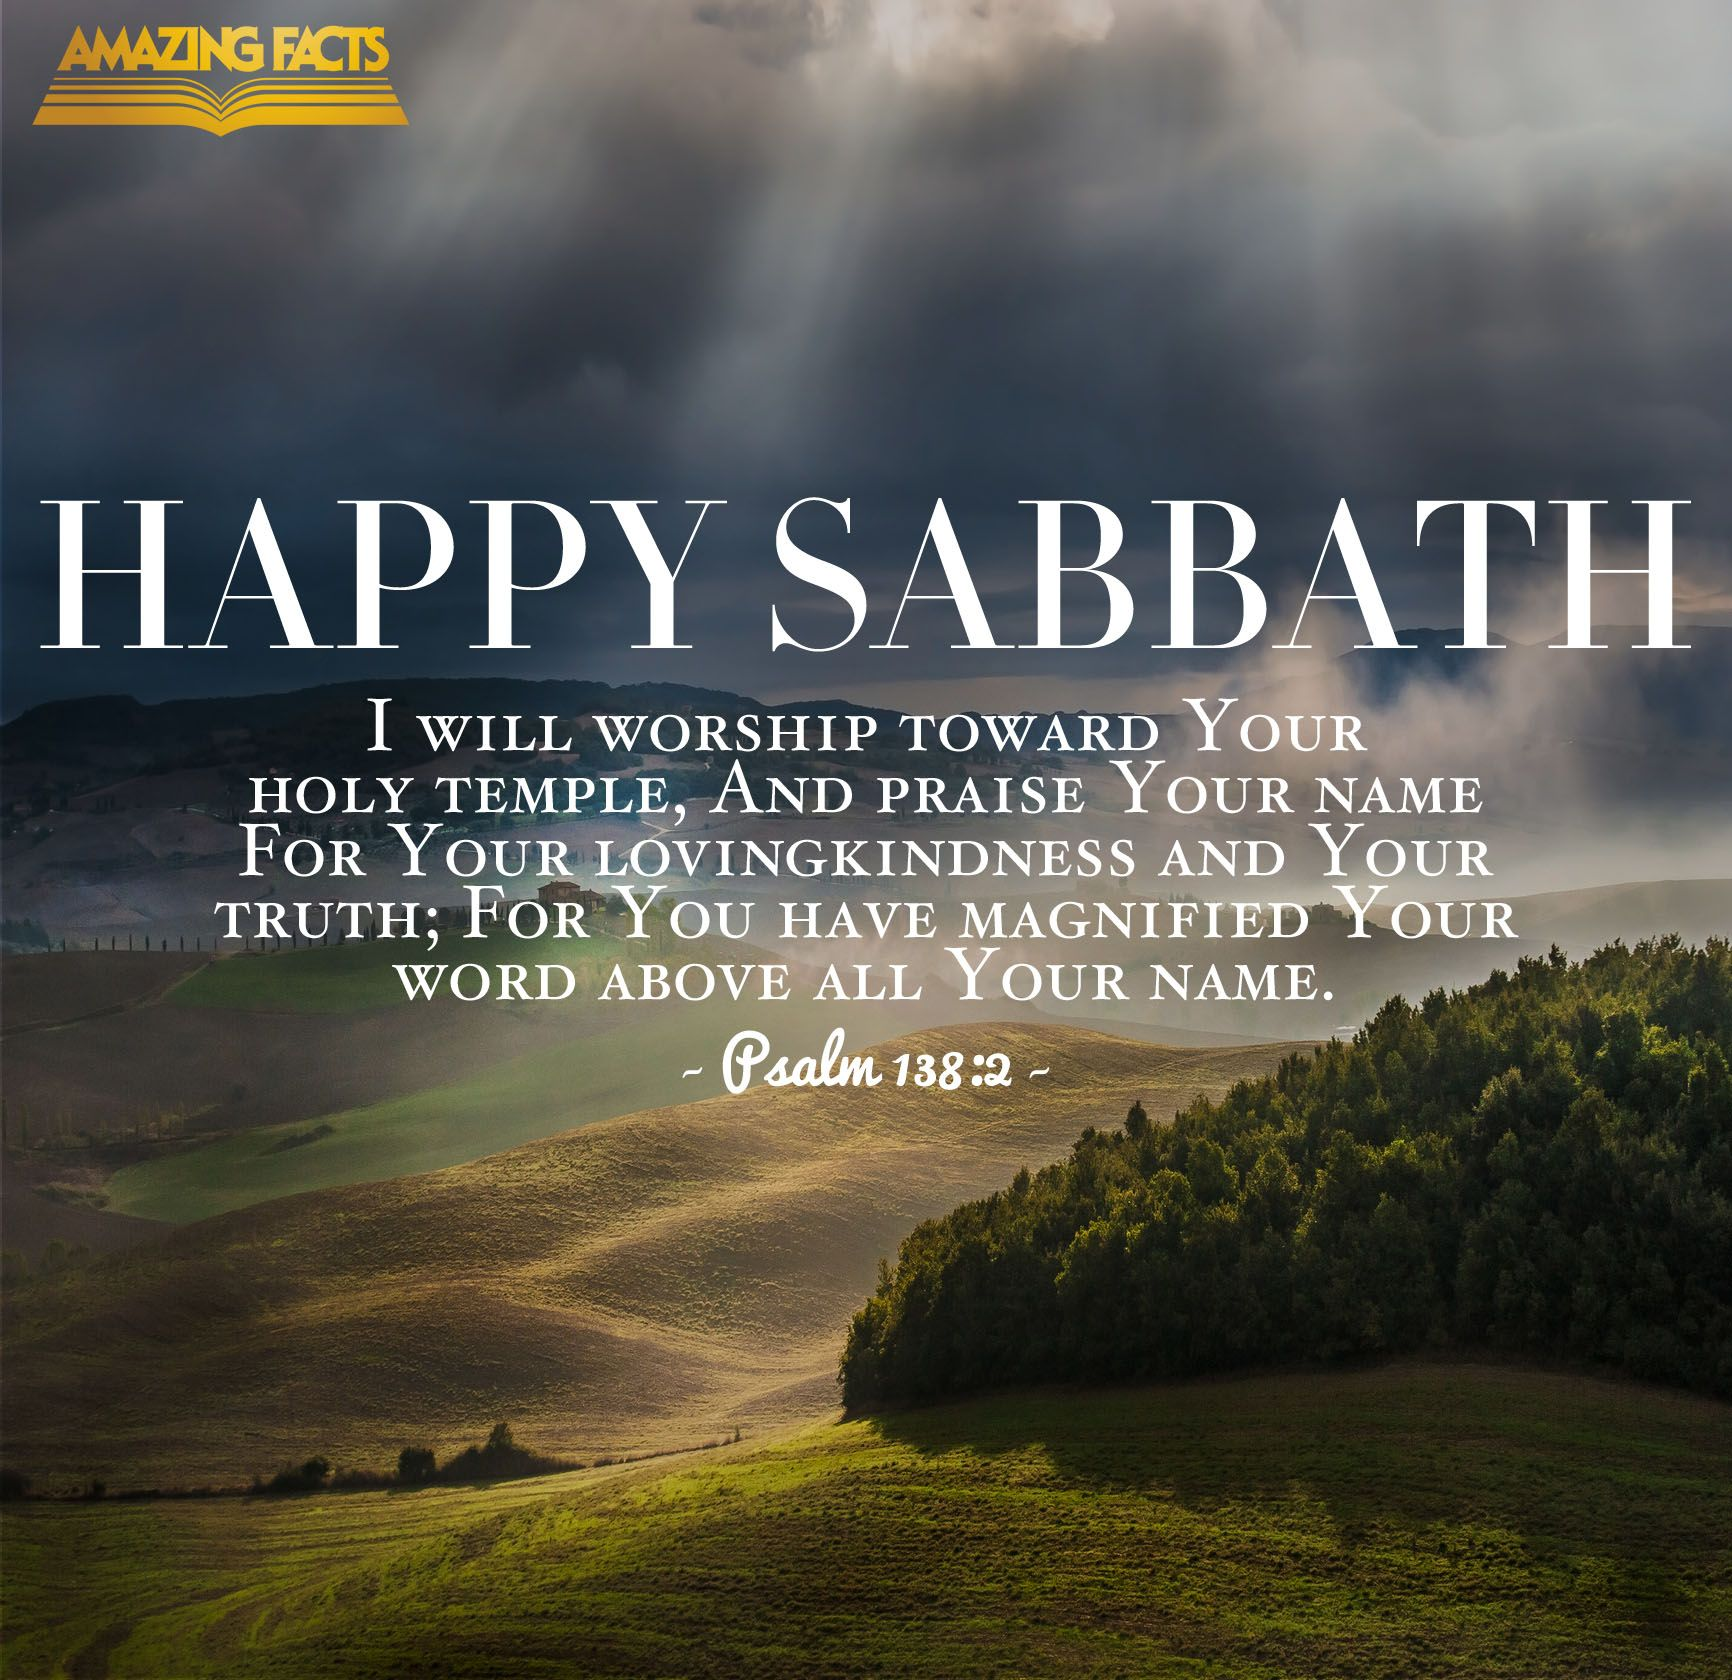 Pin by Amazing Facts on Scripture Pictures | Happy sabbath ...